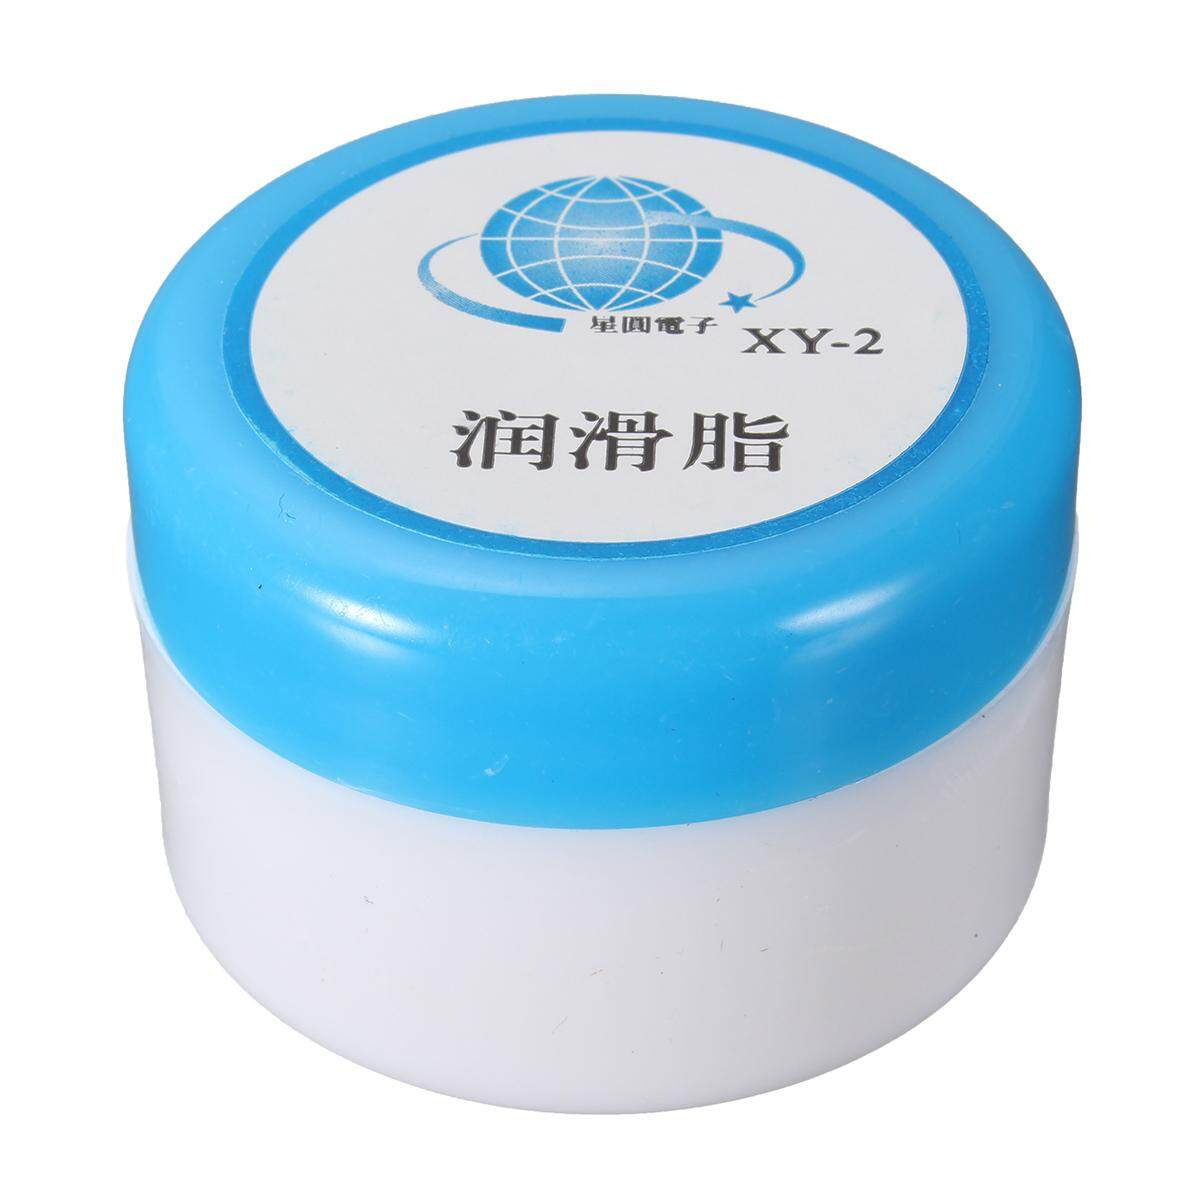 【Free Shipping + Flash Deal】 50g Silicone Grease for All Flashlight Lubricating Grease XY-2 Oil for Solvent Printer Slider Guide Rail Torch Accessories